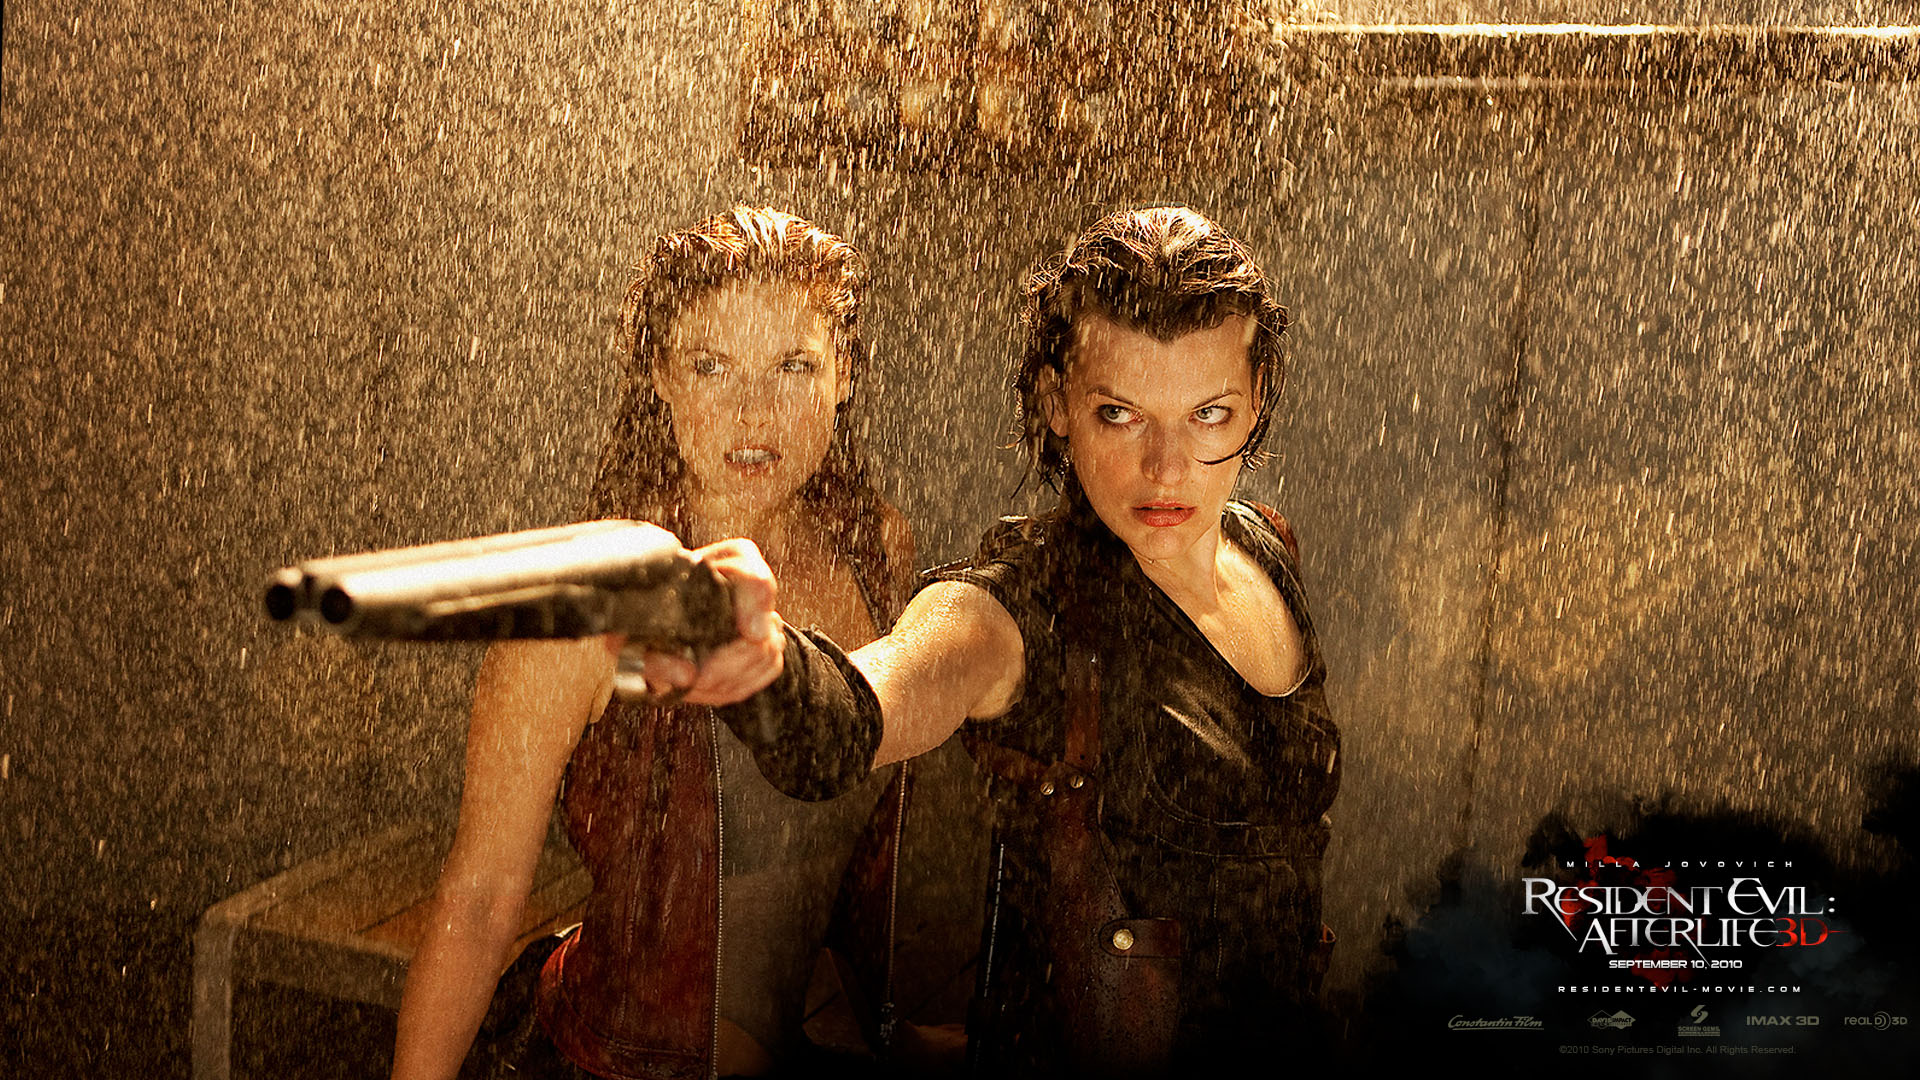 Resident Evil 5 Movie Will Be Made Says Alice Actress Milla Jovovich Video Games Blogger